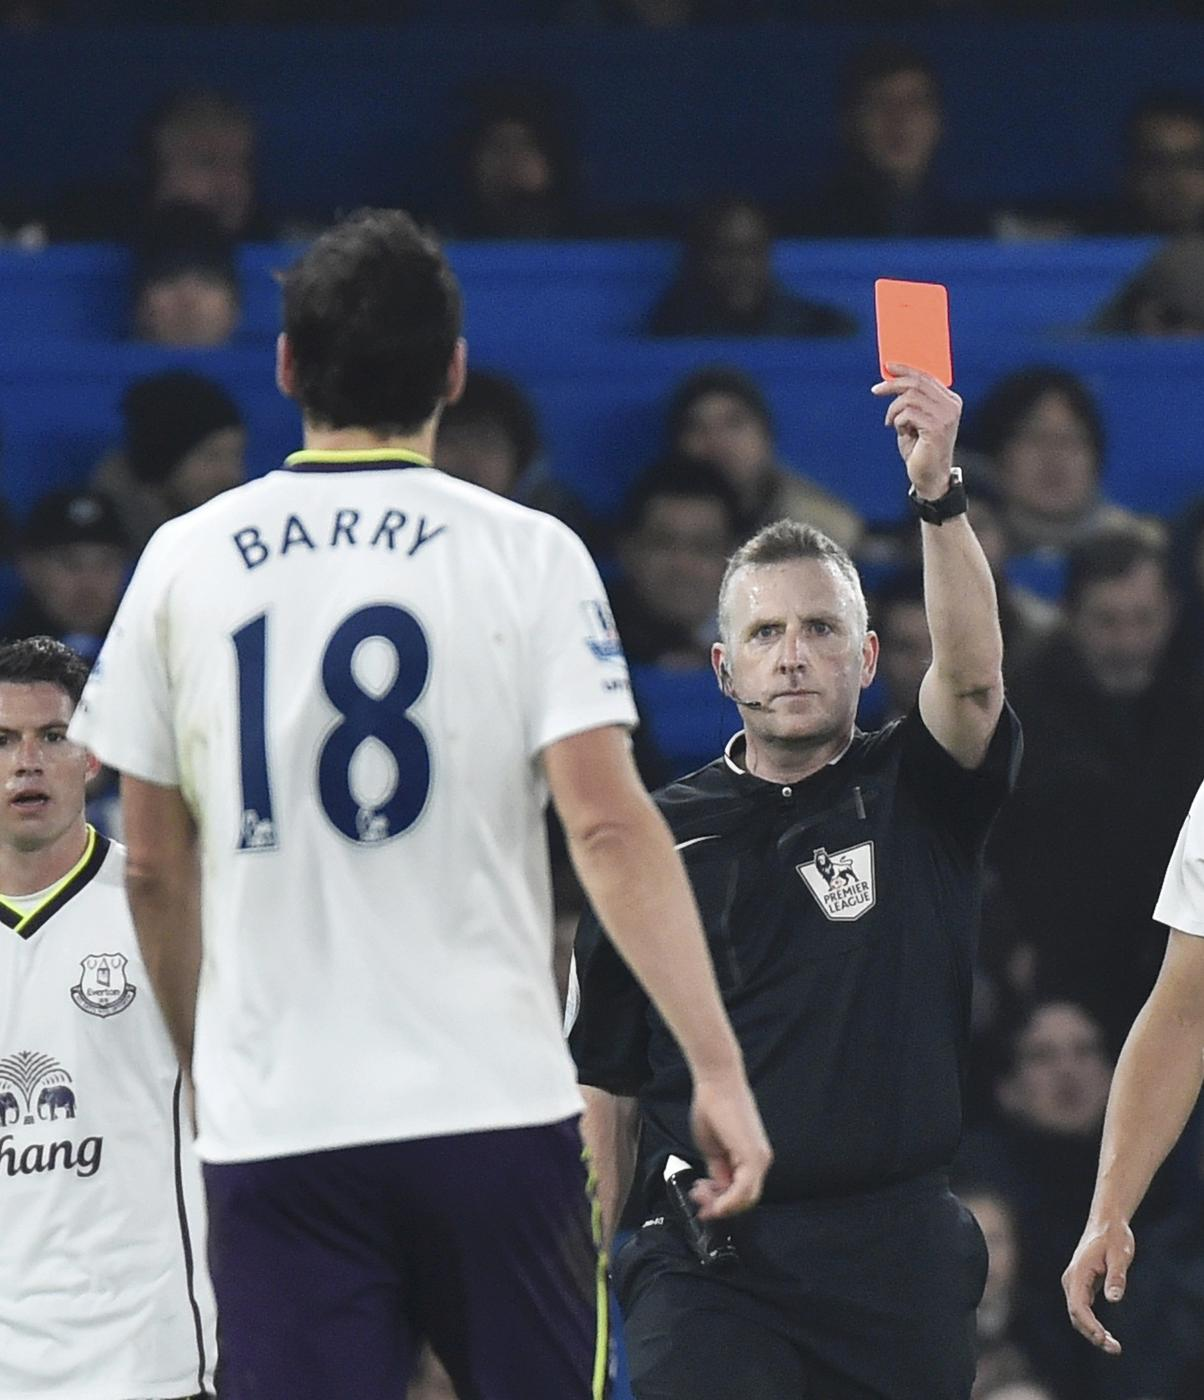 Gareth Barry suspension gives Everton hope as Toffees can finally play best midfield pairing against Leicester City